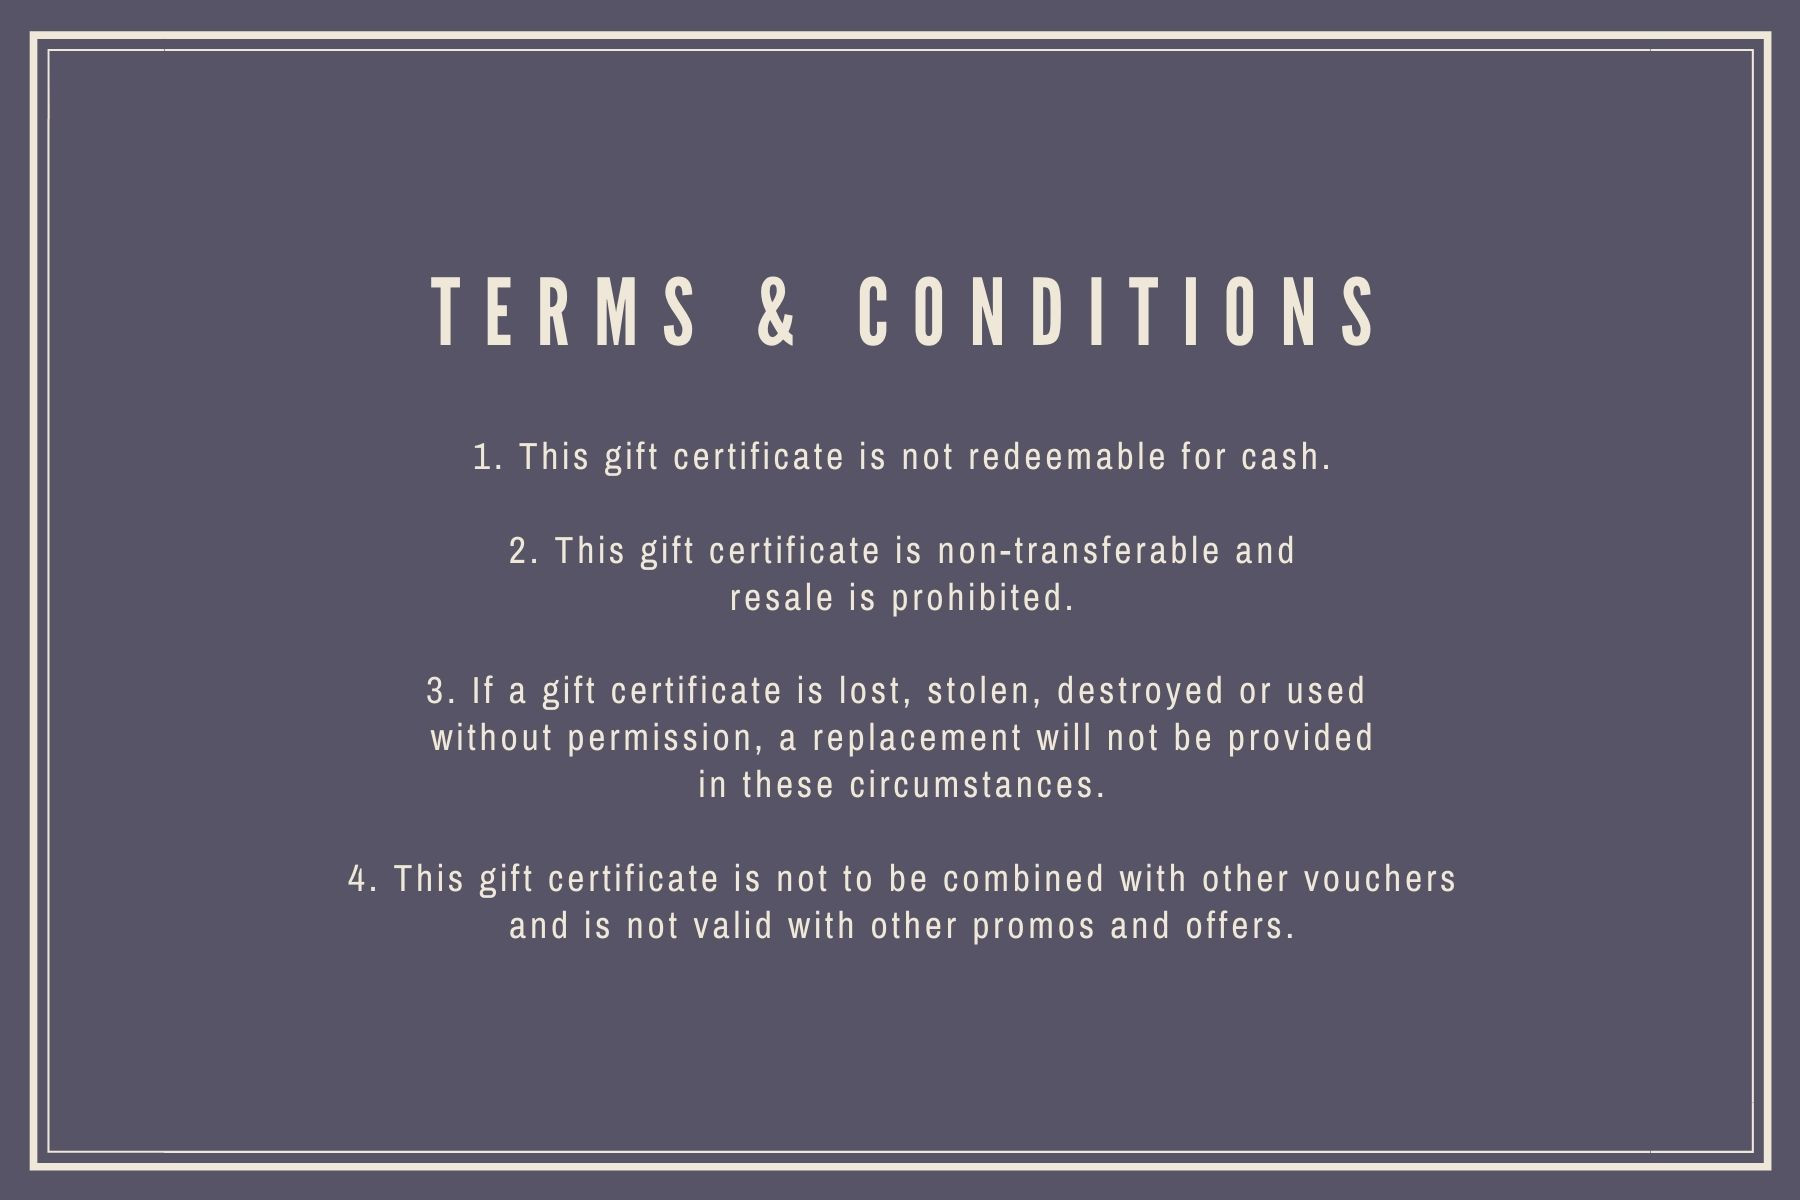 Model Terms & Conditions